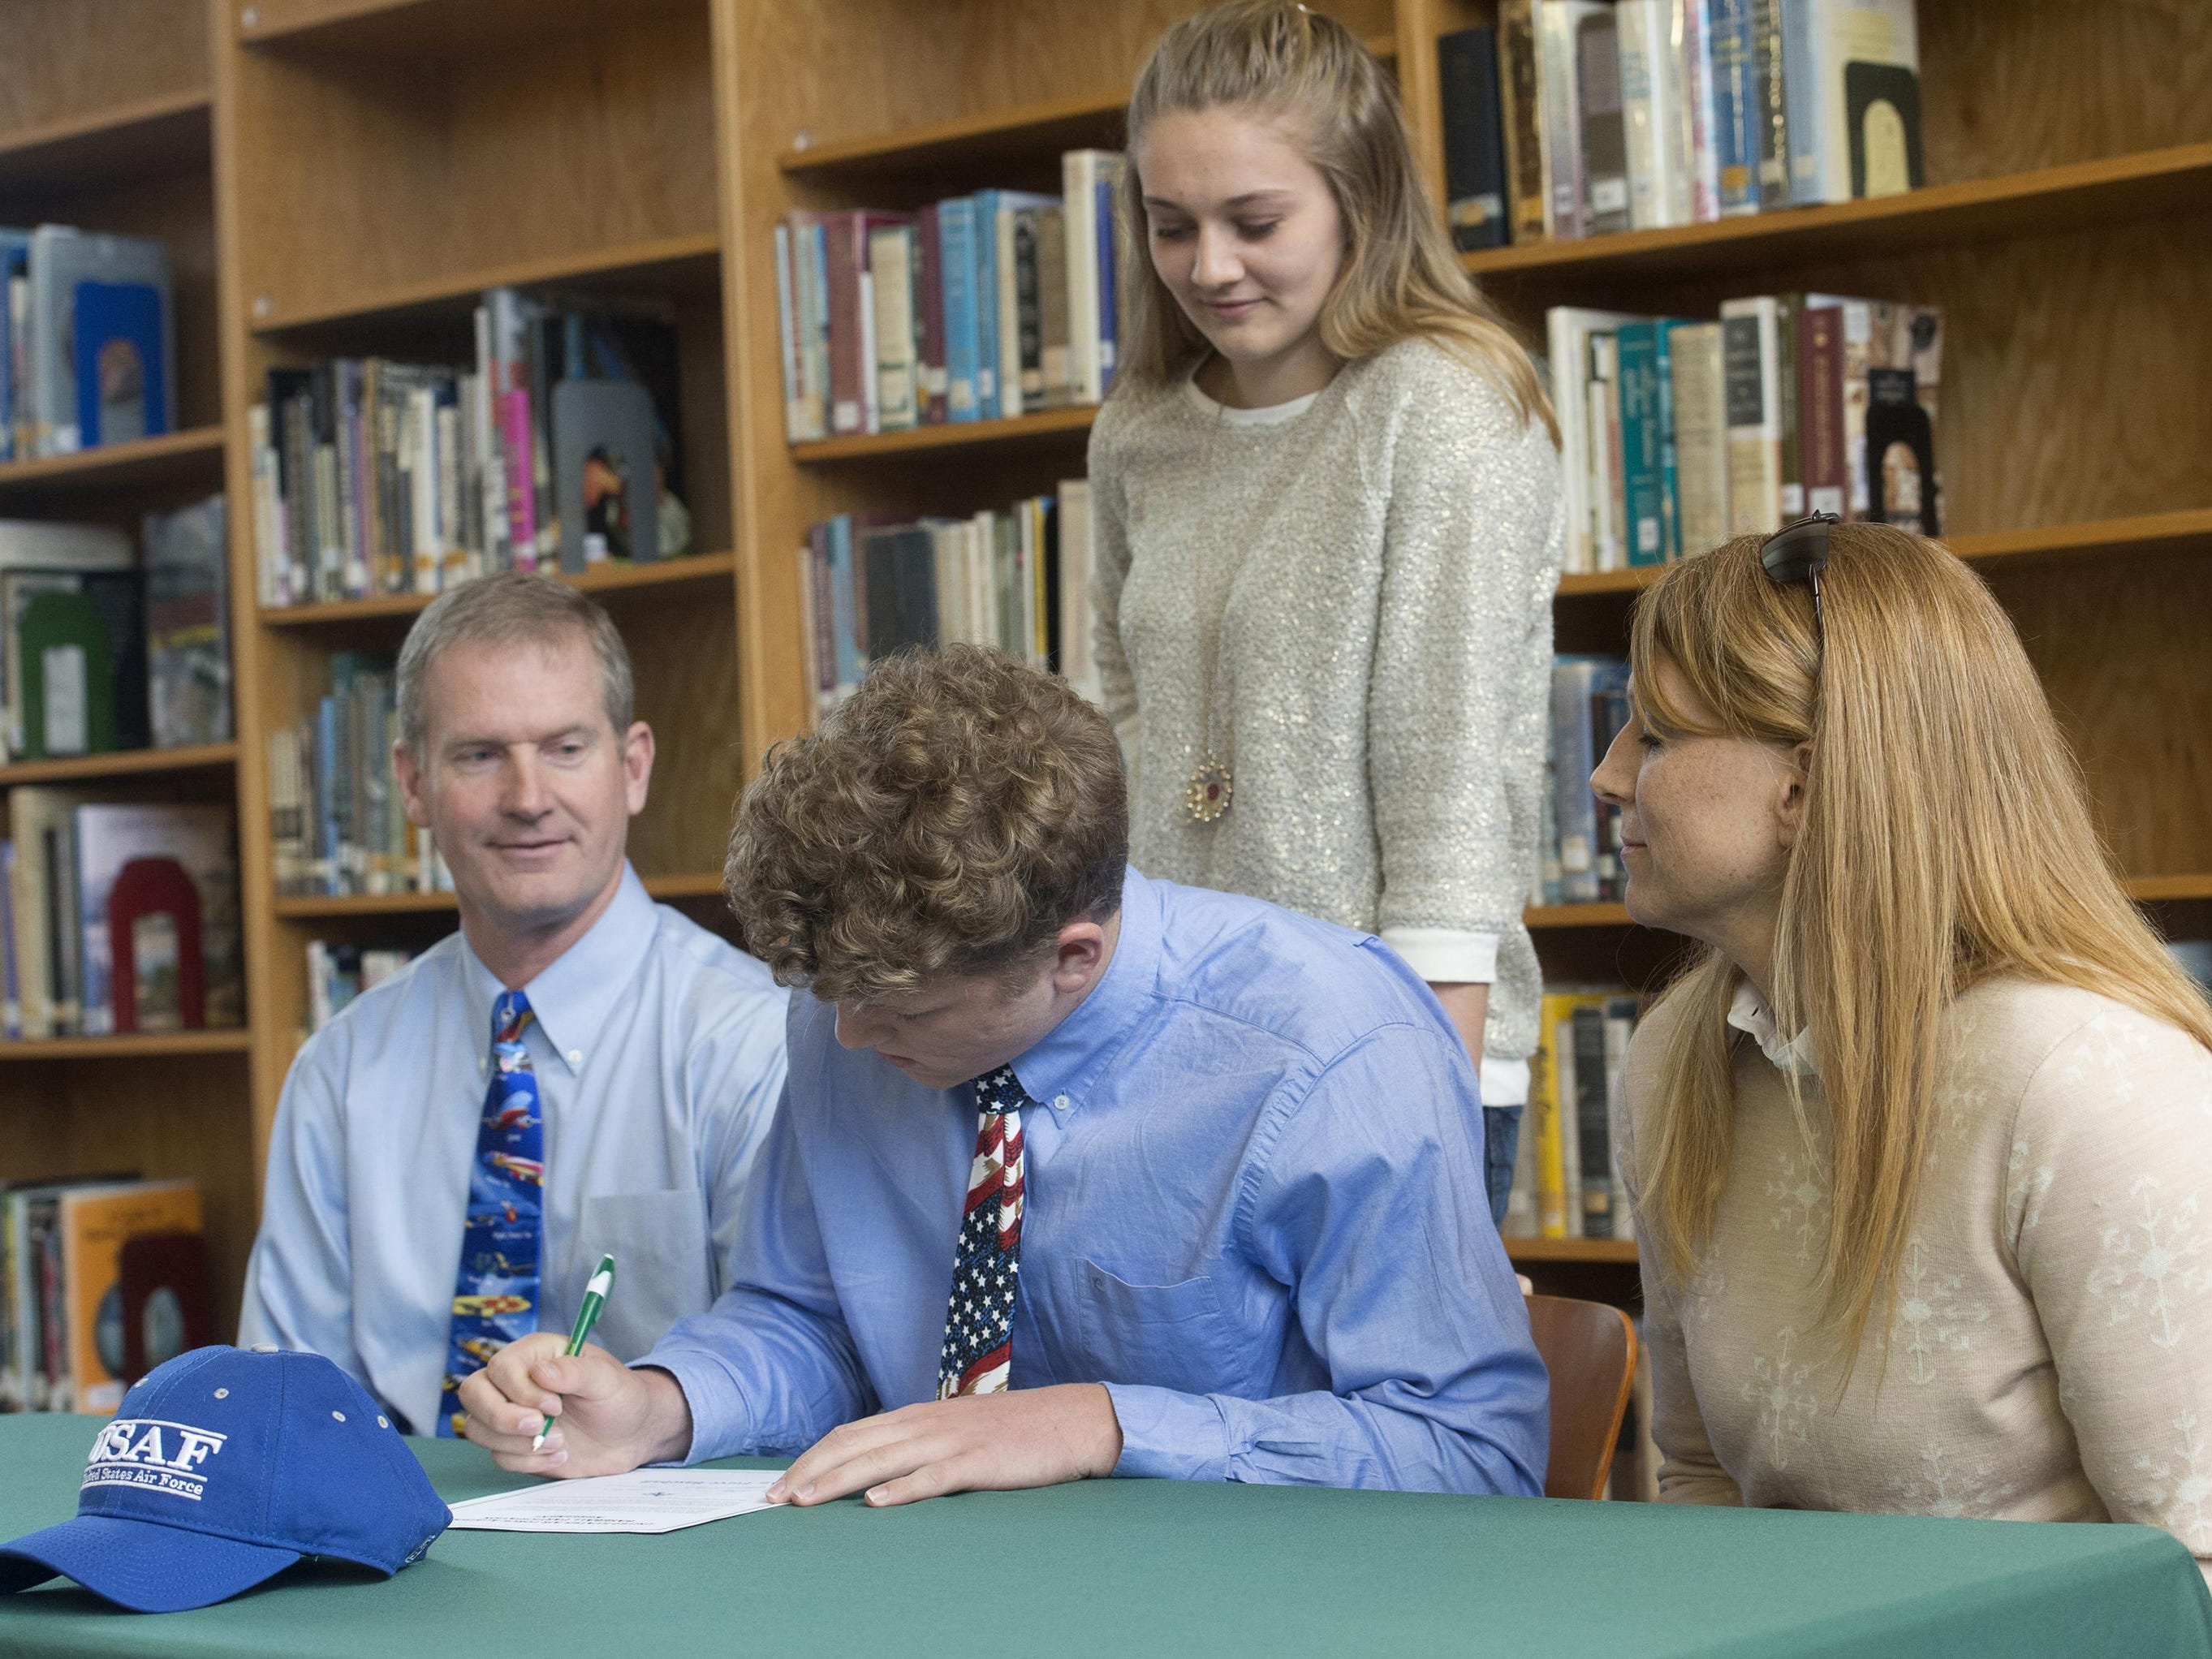 Catholic High School student, Evan Floyd, center, signs with United States Air Force Academy during a ceremony at the school Monday morning, while his family looks on.